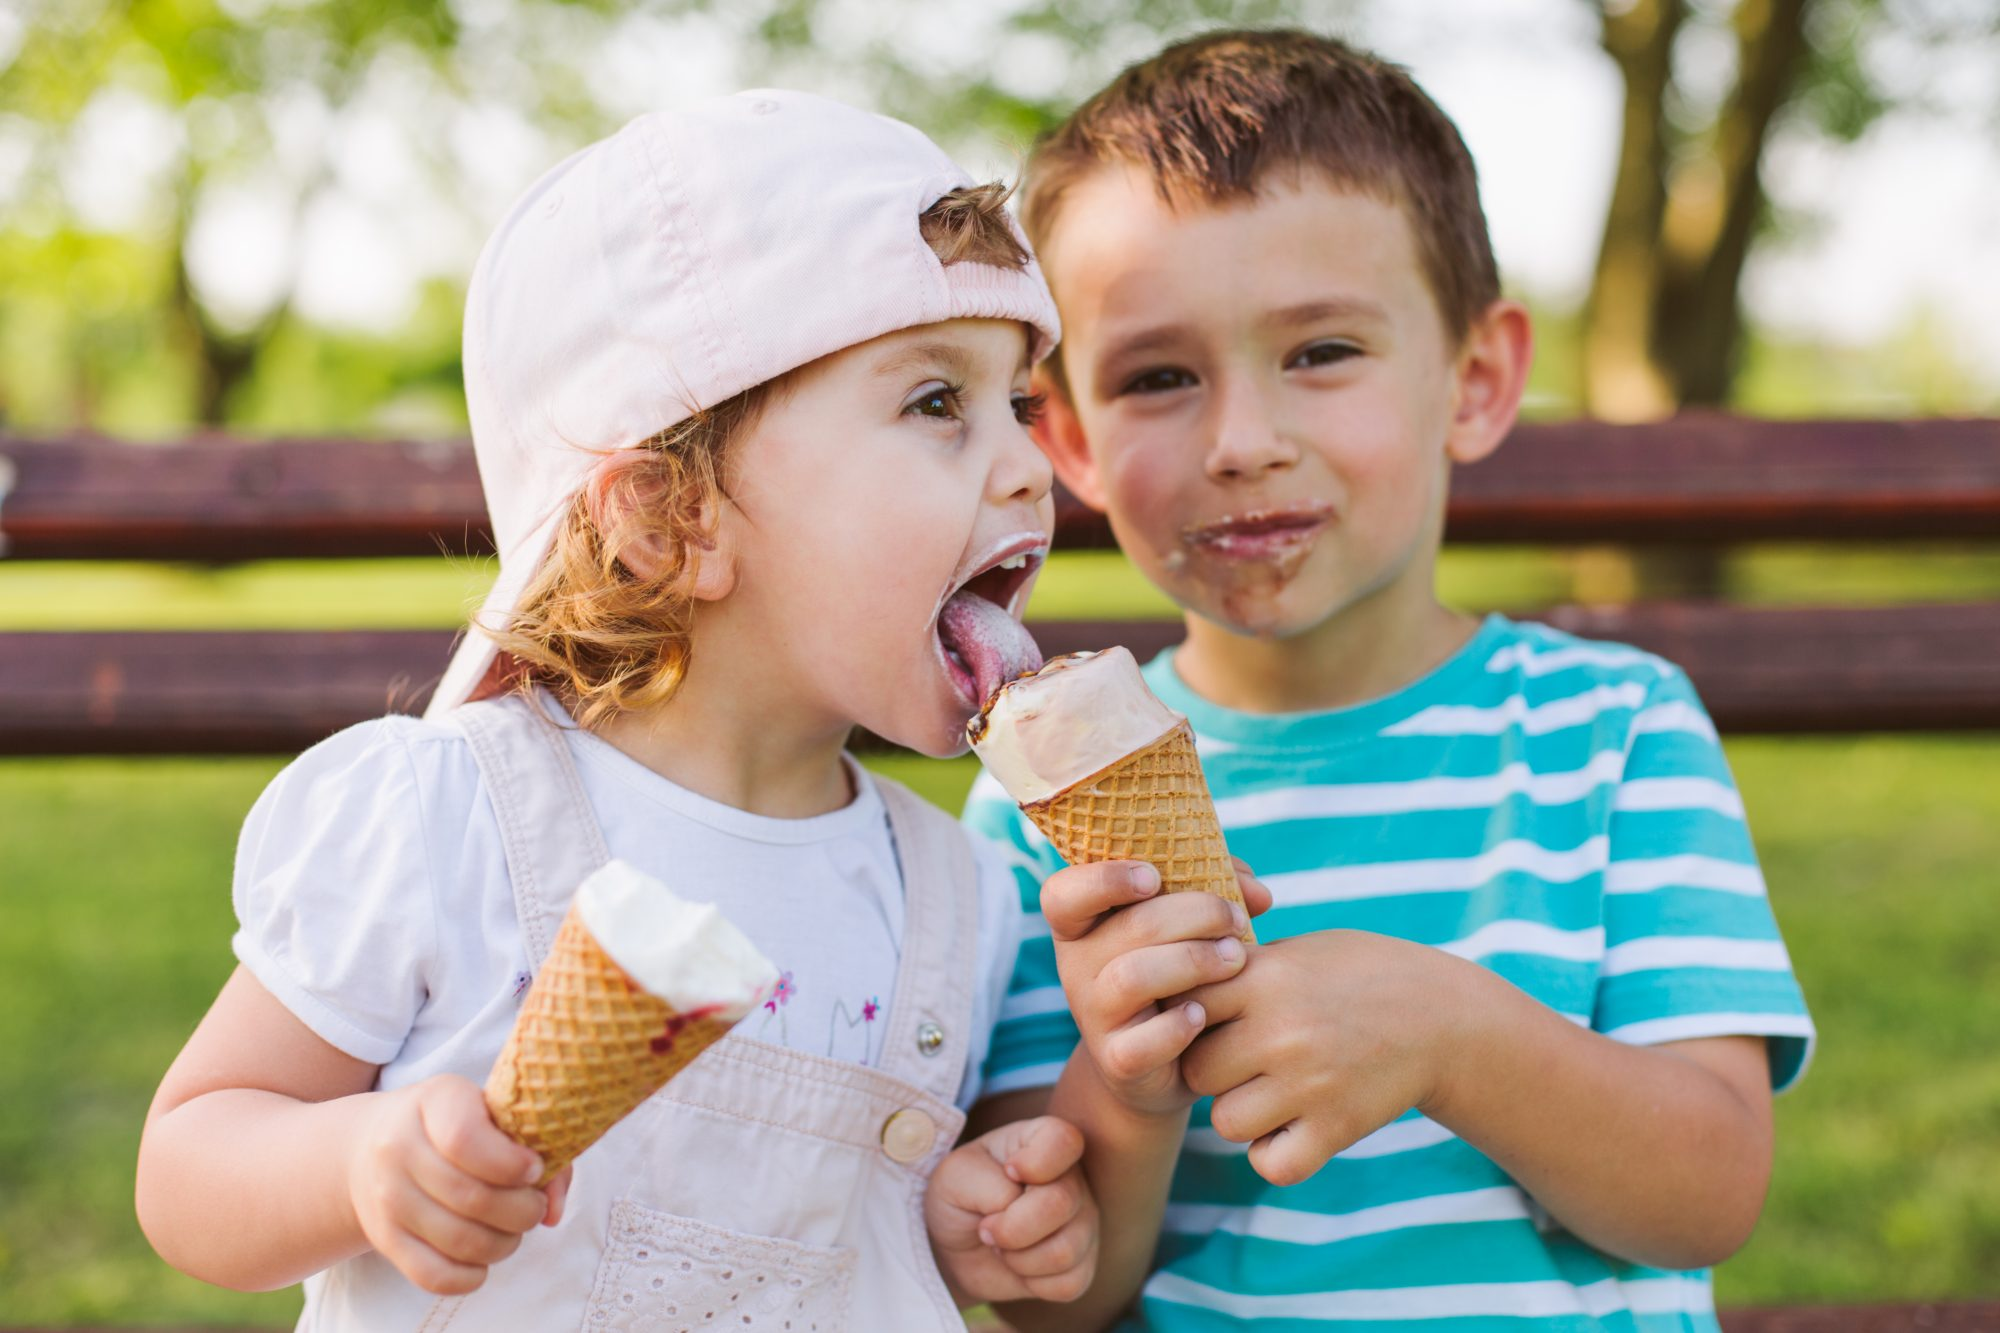 Little Boy Sharing Ice Cream with Sister